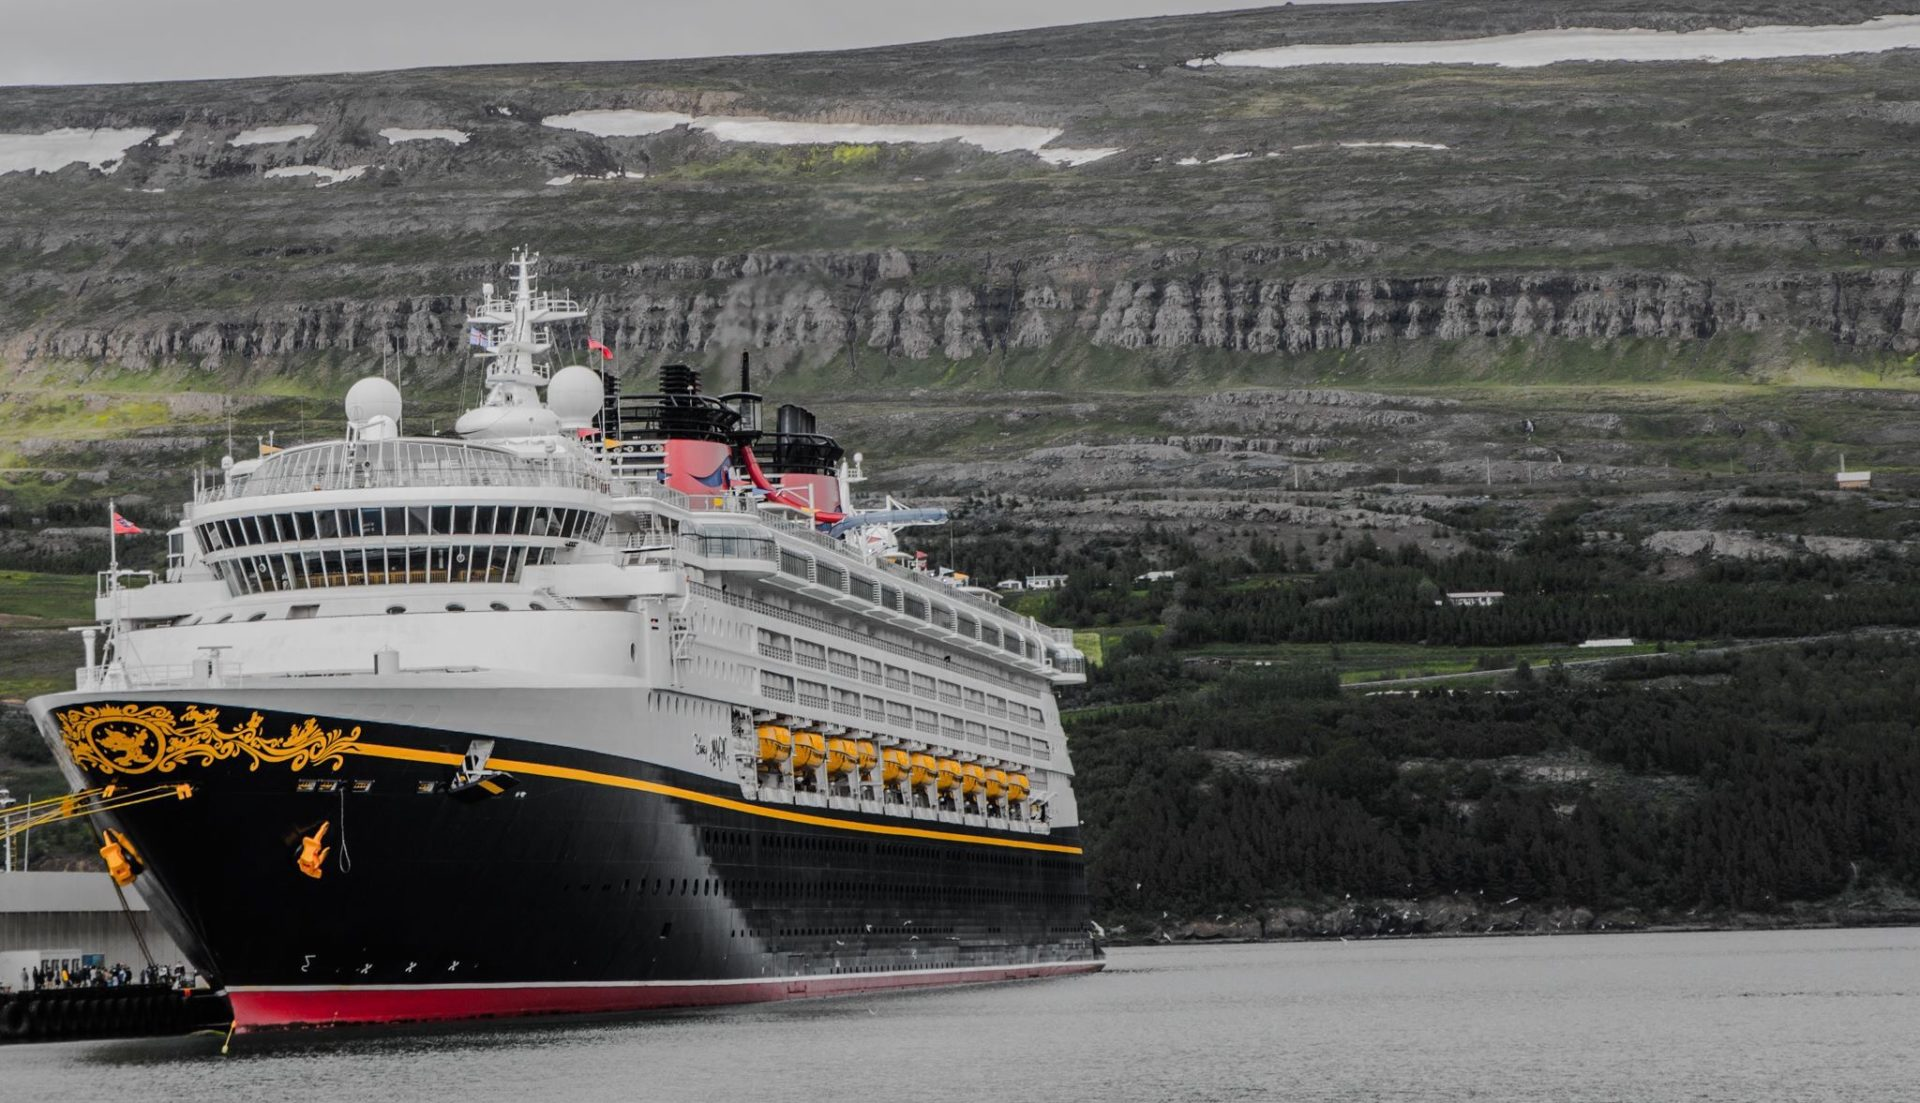 Disney cruise shore excursions in Iceland